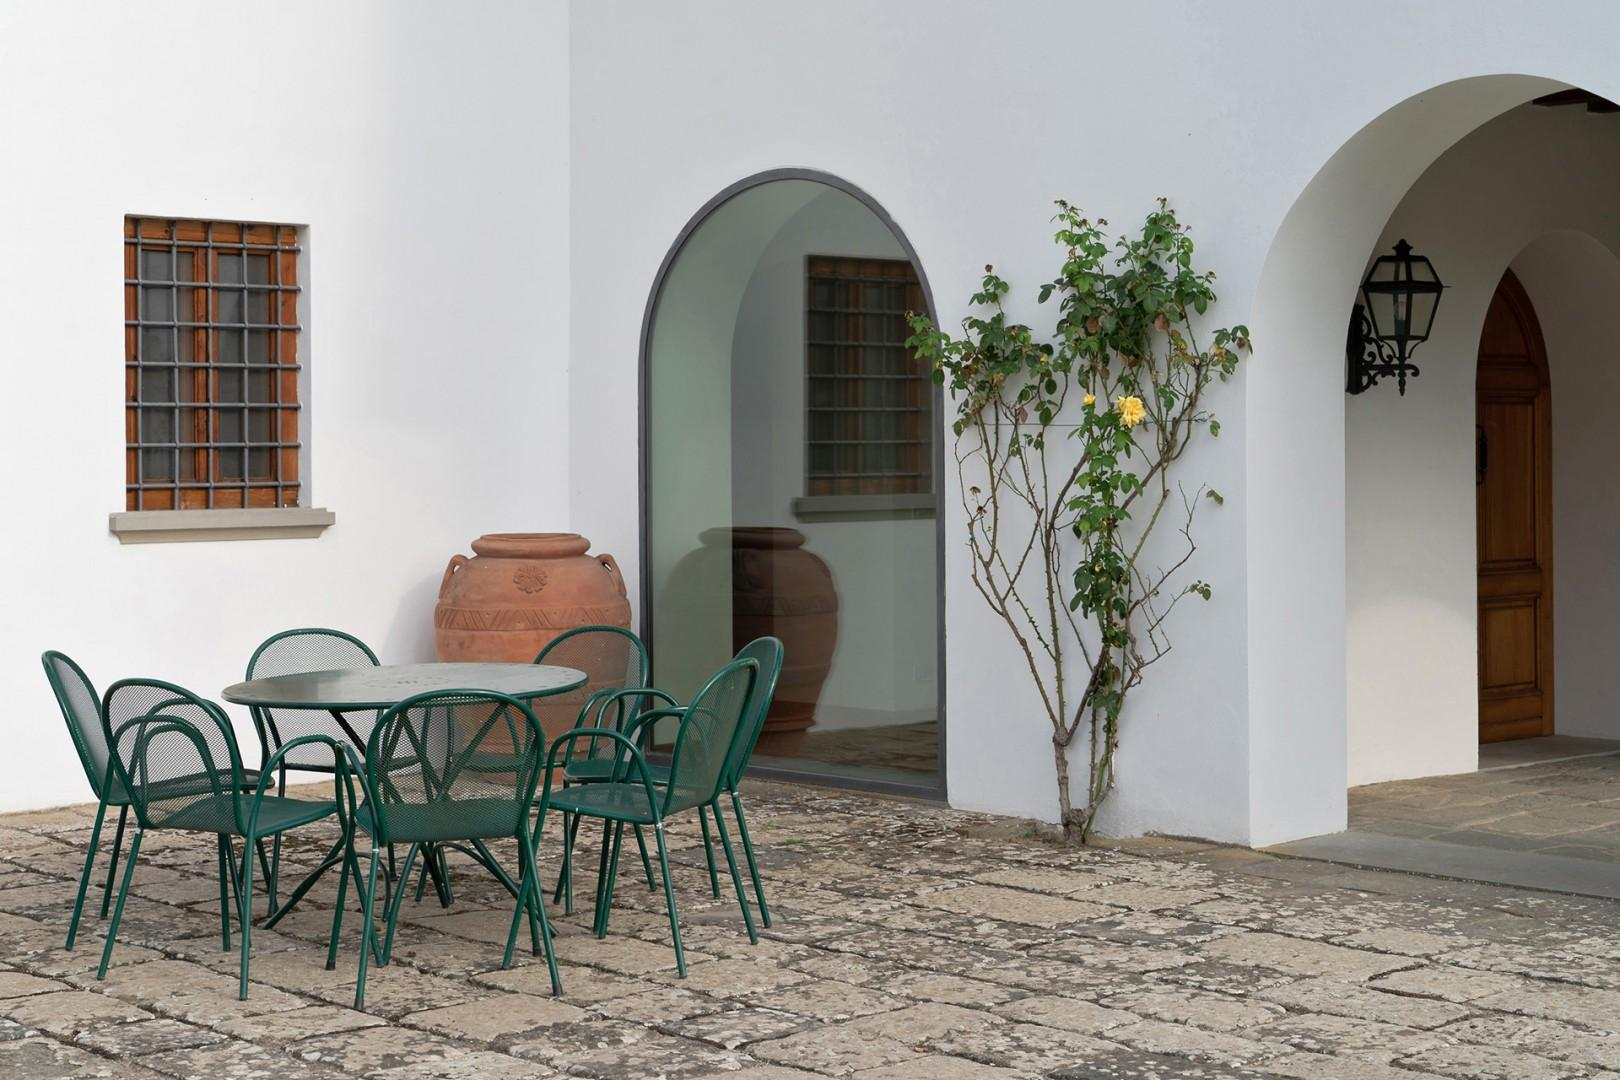 Enjoy meals al fresco at this outdoor seating area on the patio.